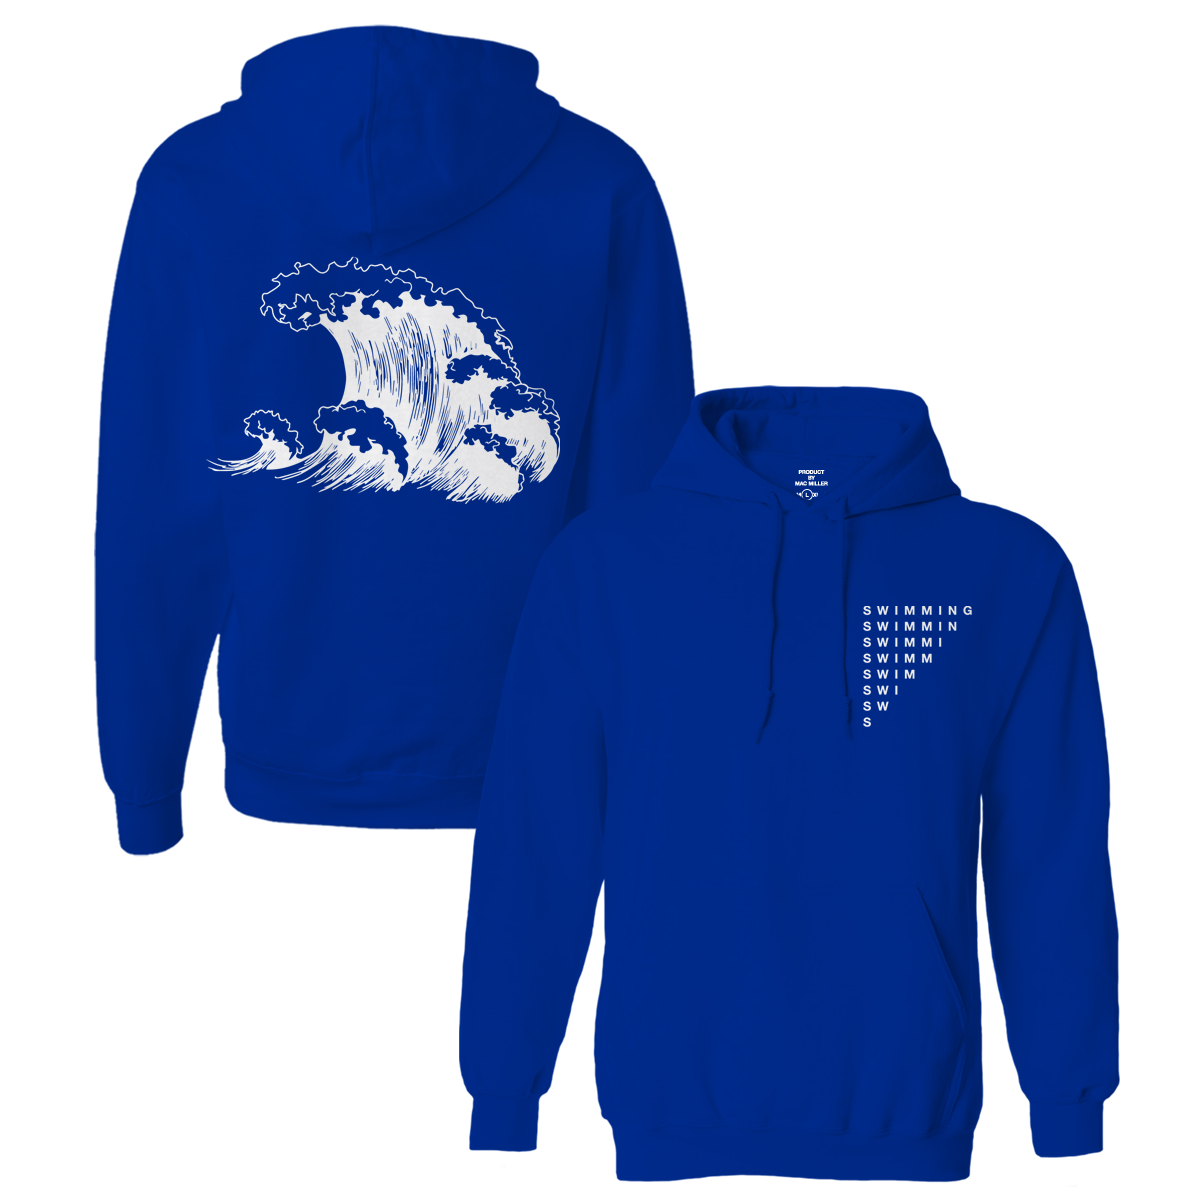 SWIMMING WAVE HOODIE - BLUE - Mac Miller